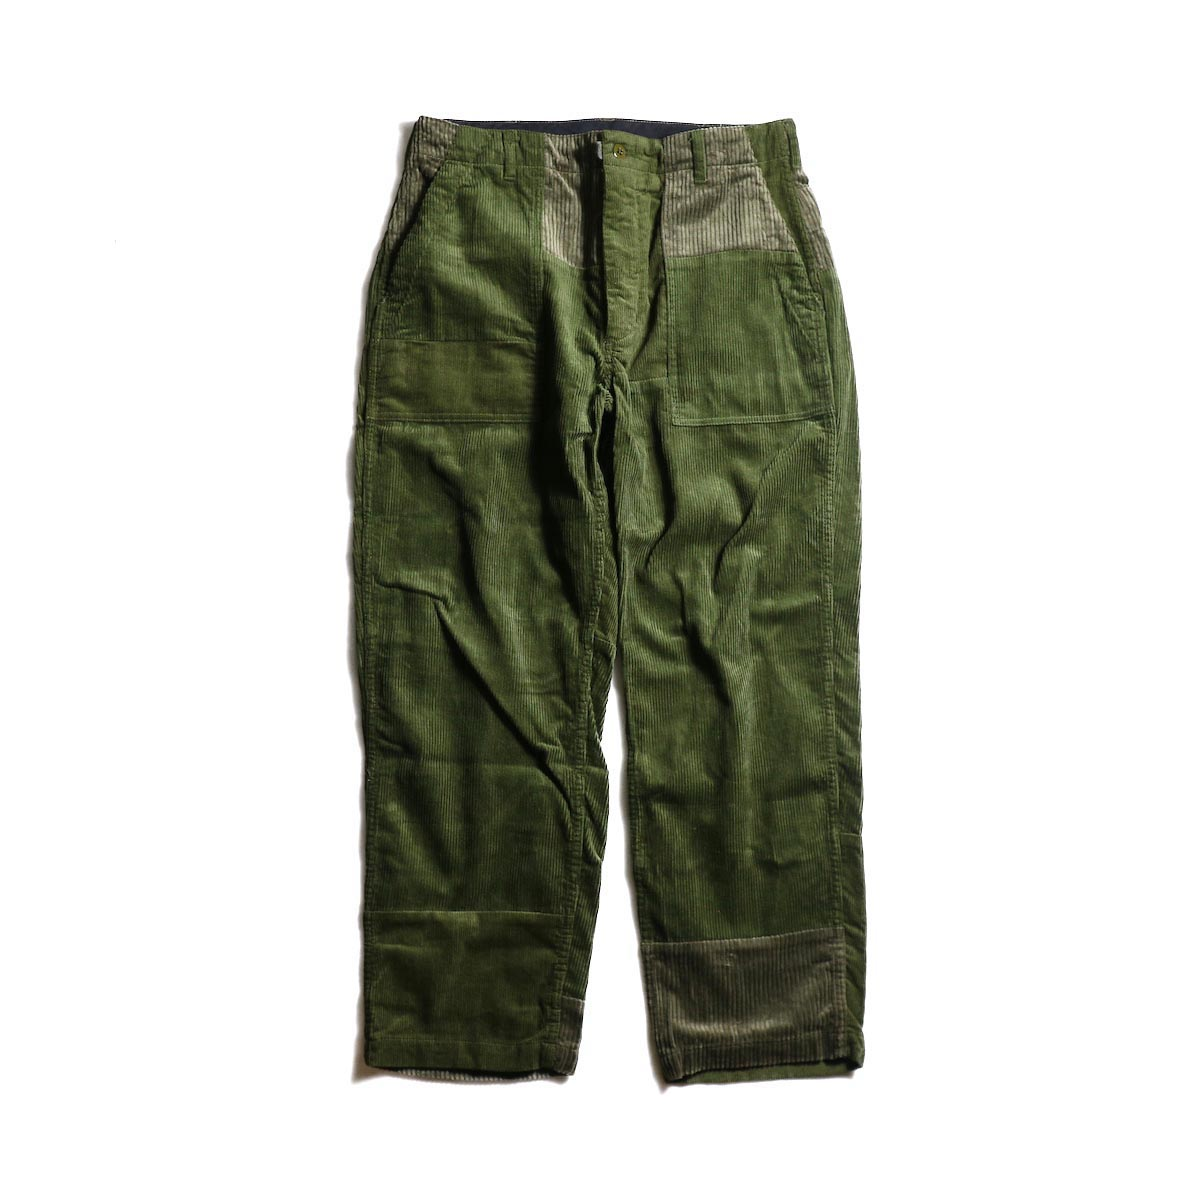 ENGINEERED GARMENTS / Fatigue Pant -8W Corduroy (Olive)